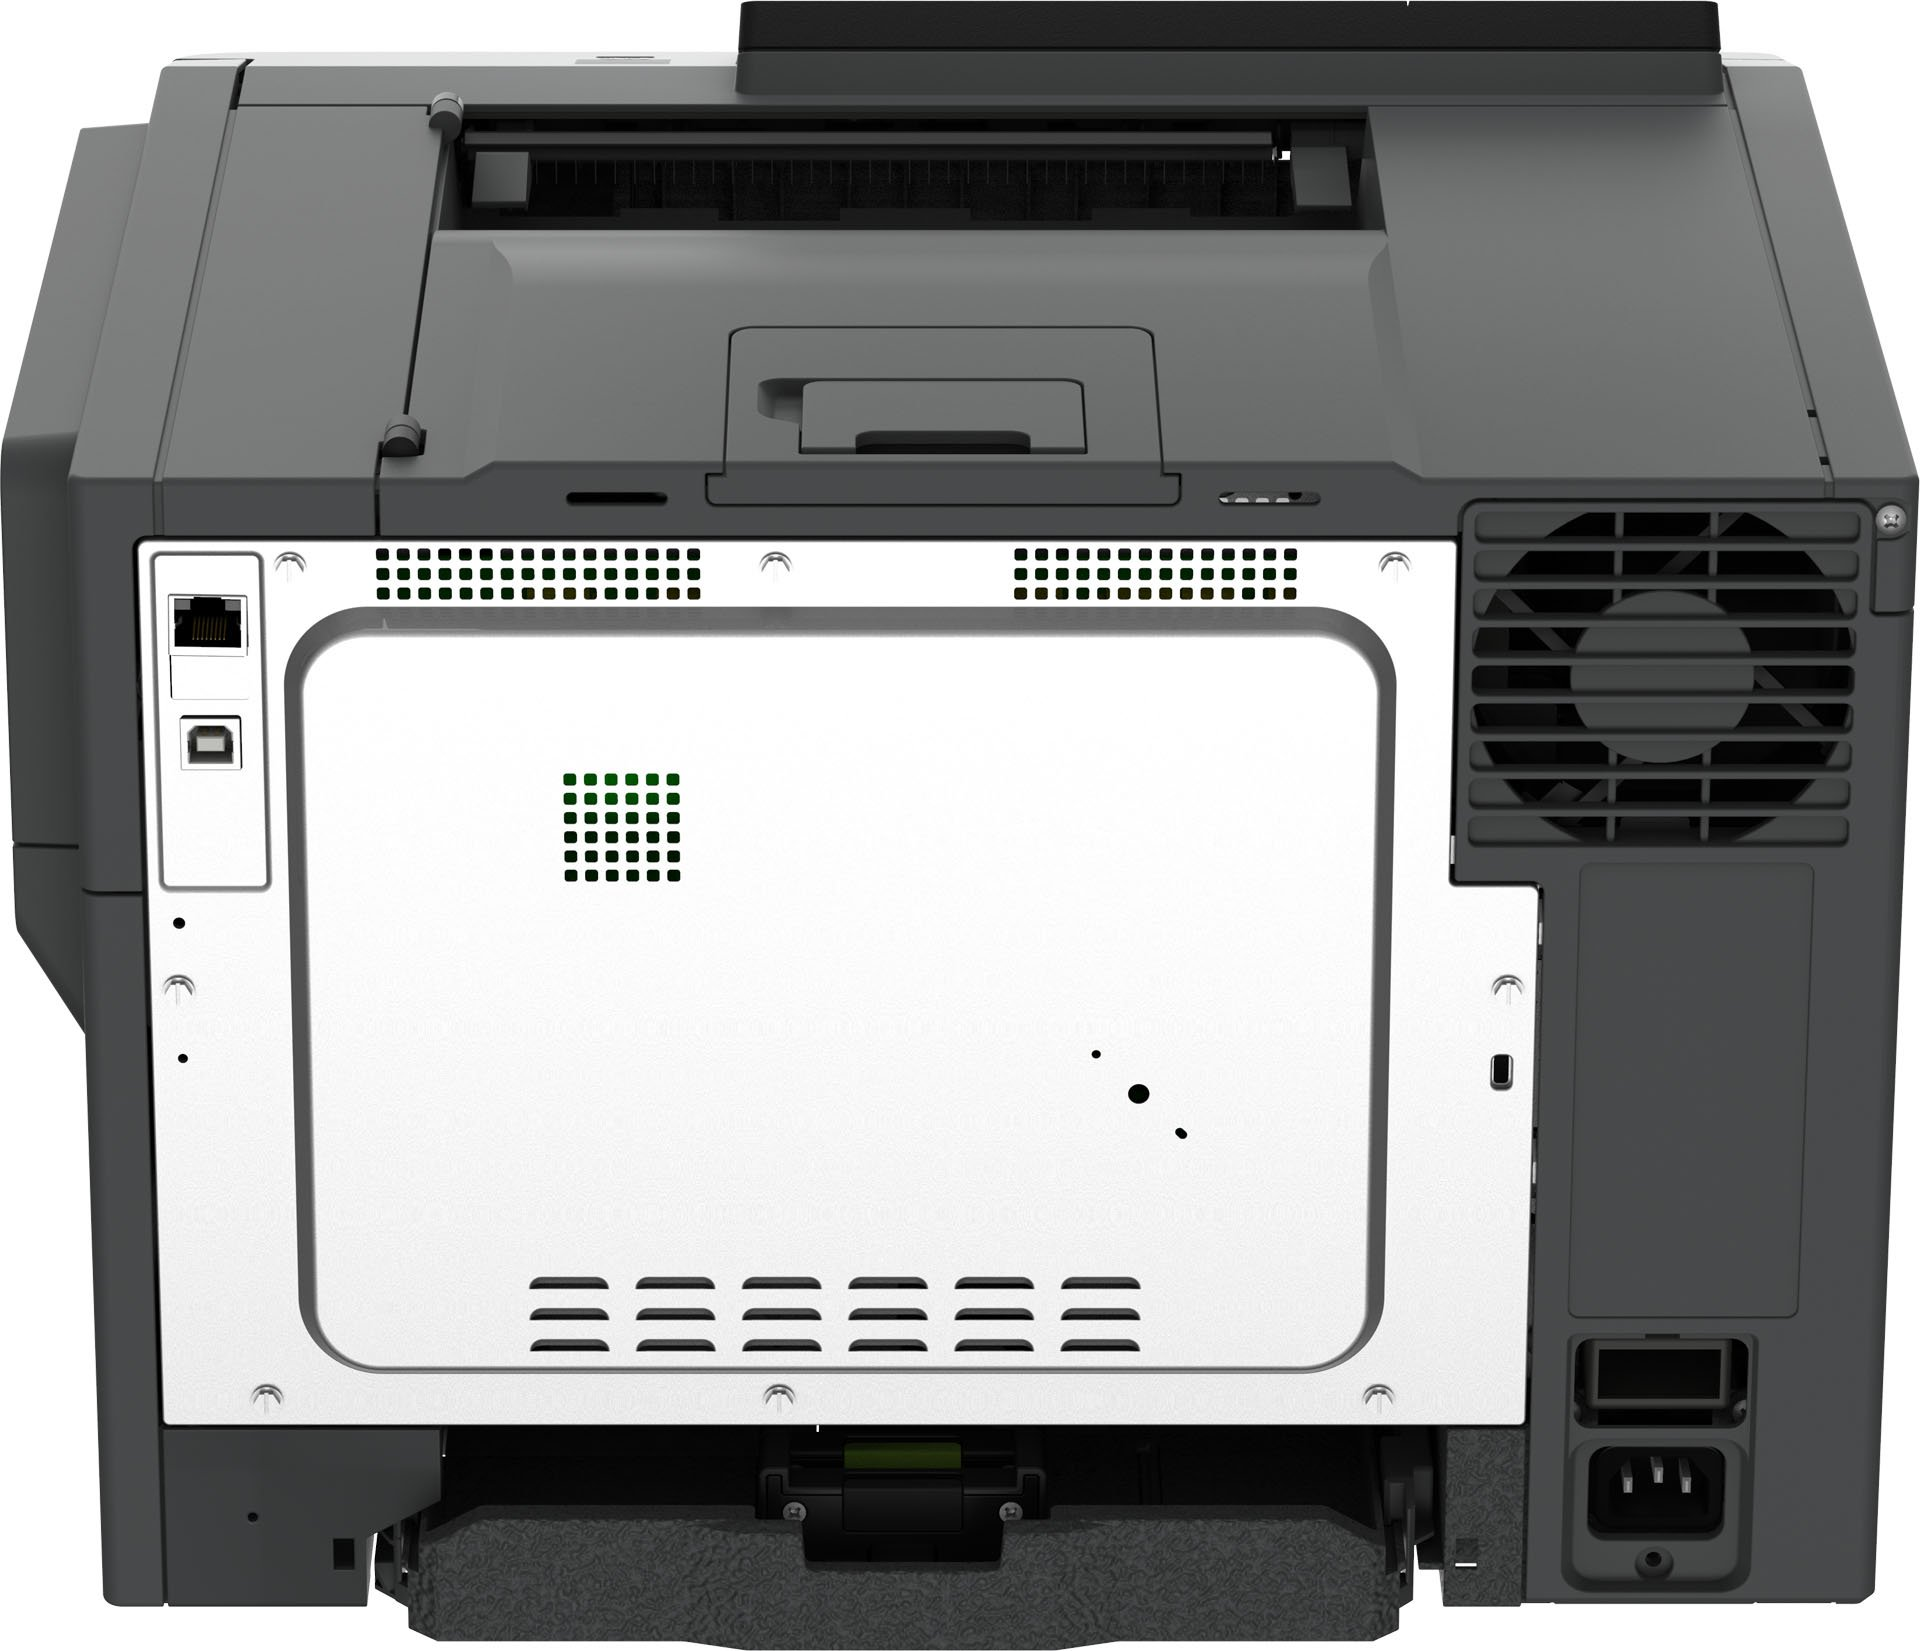 Lexmark Color Single-Function Laser Printer, C2425dw, Duplex Printing, Wireless, with AirPrint (42CC130) by Lexmark (Image #4)